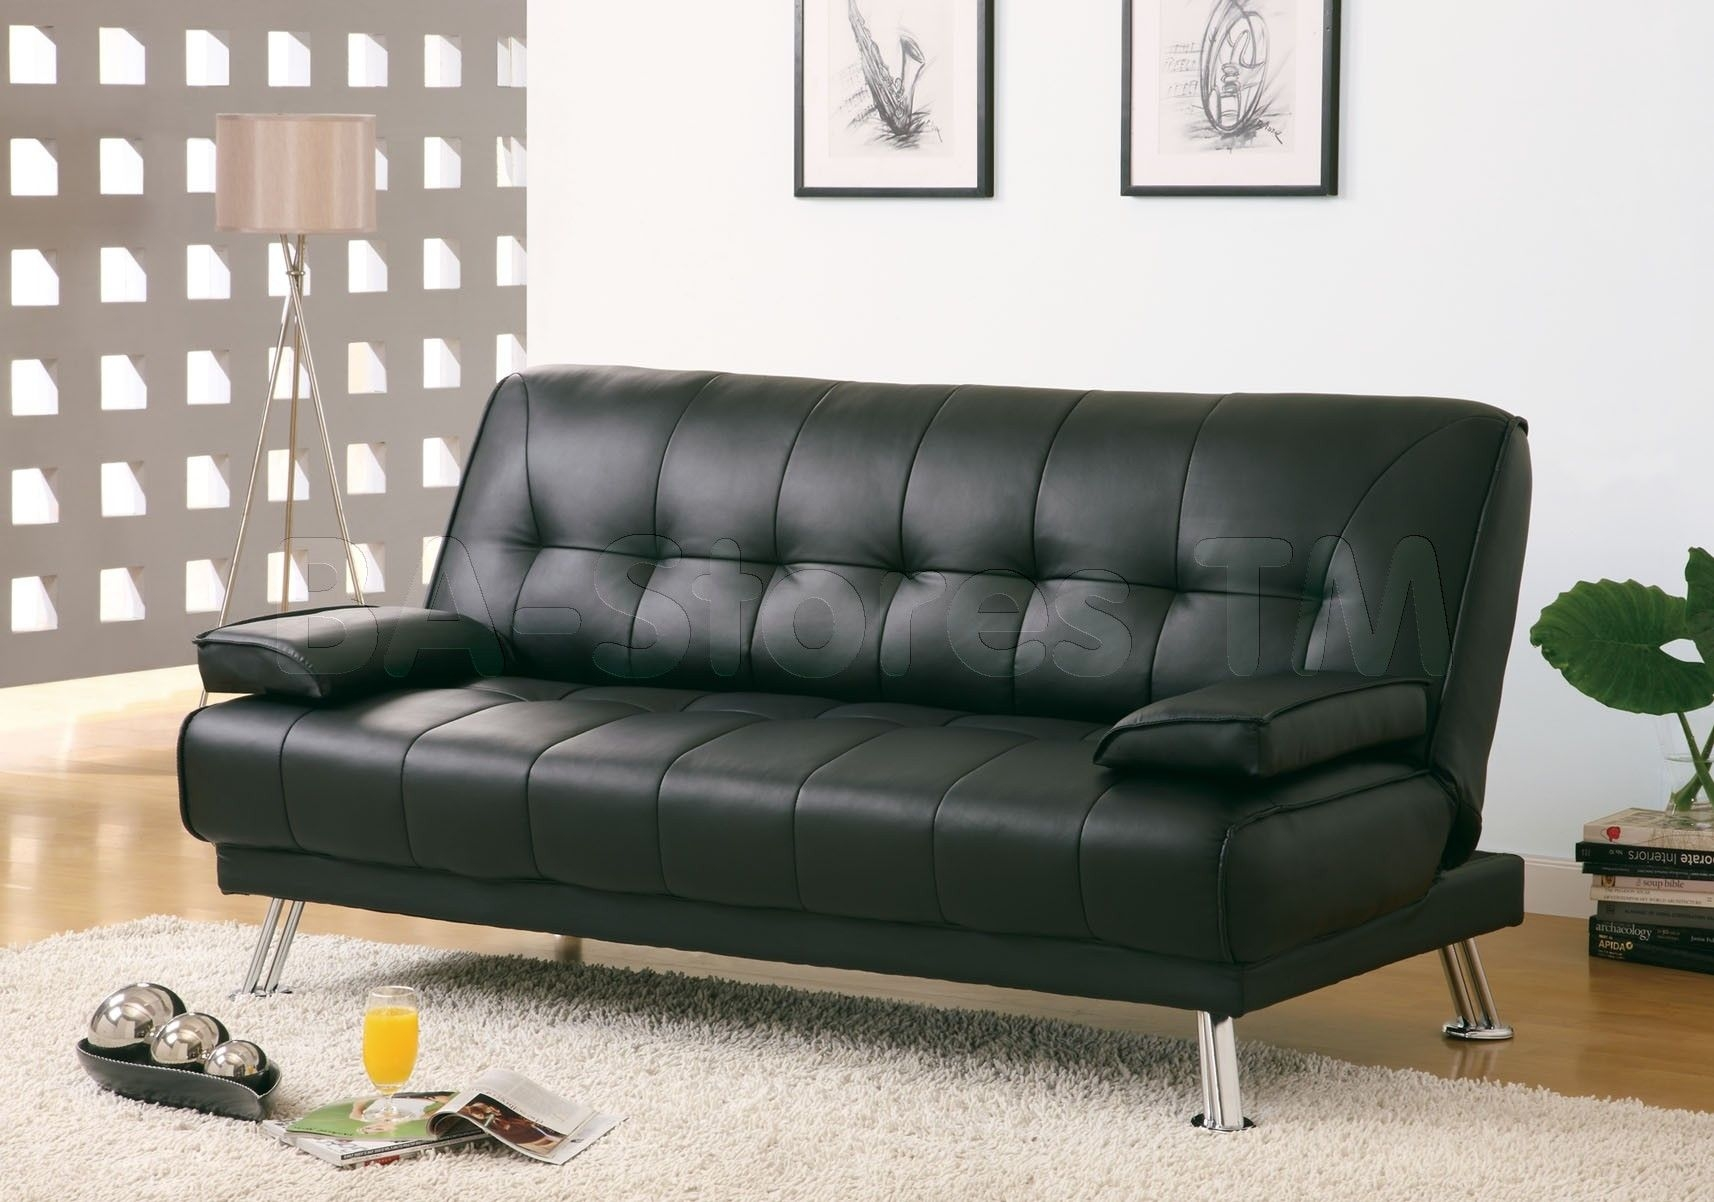 monarch specialties 9103 click clack futon in black leather leather futons   foter  rh   foter